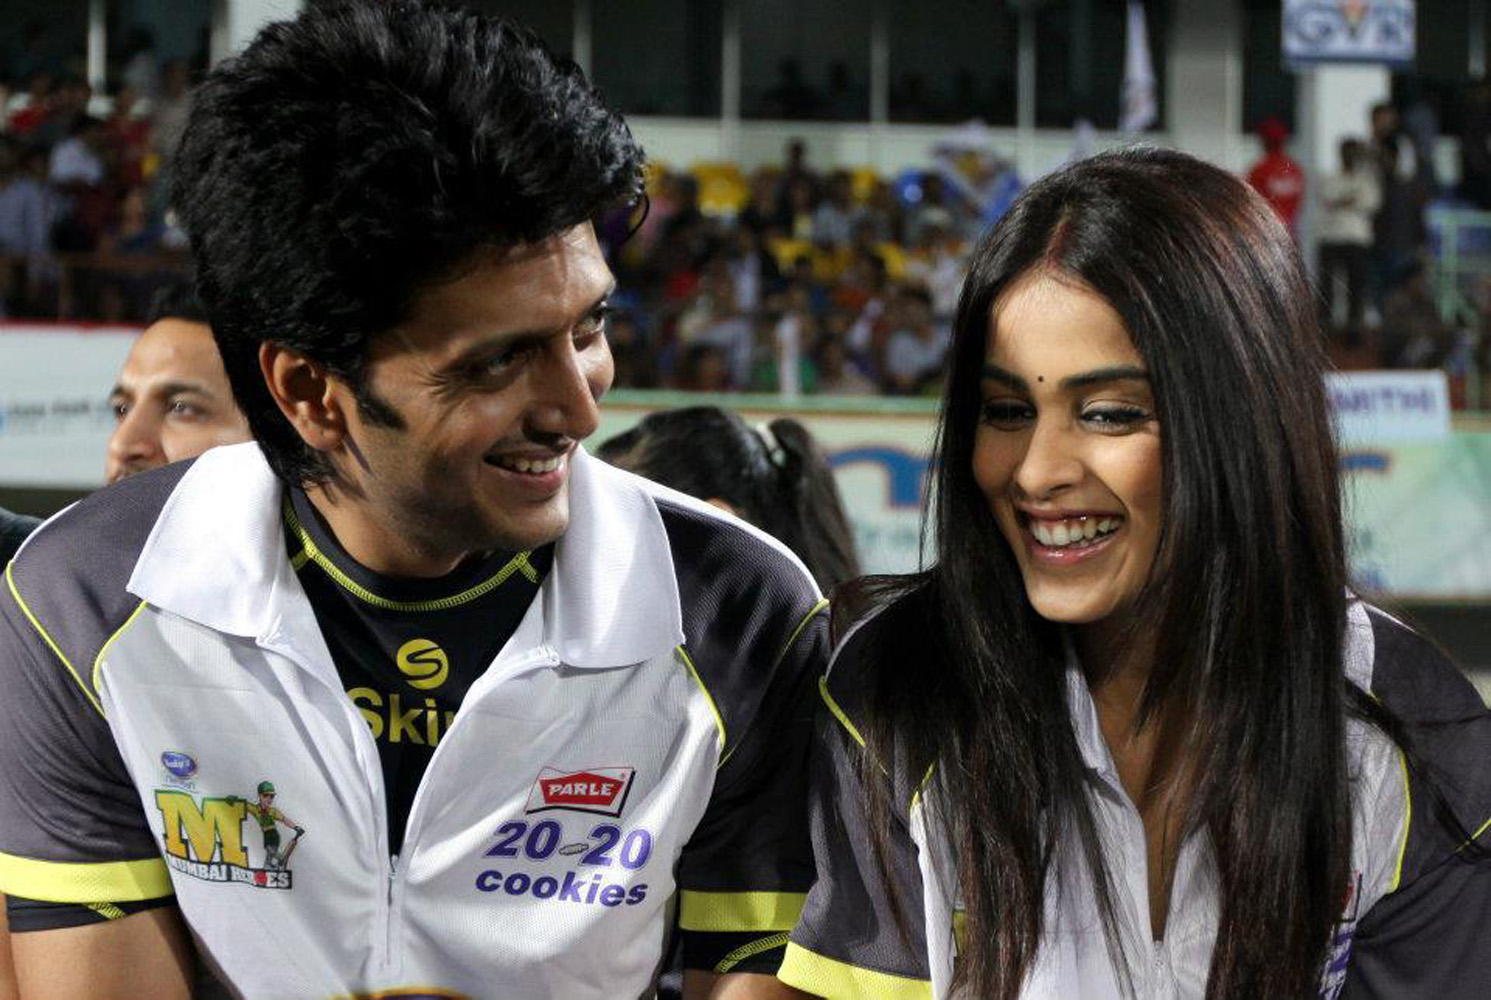 http://onlookersmedia.in/wp-content/uploads/2015/05/Riteish-Deshmukh-Genelia-Family-Stills-Images-Photos-Bollywood-Movie-Onlookers-Media-2.jpg